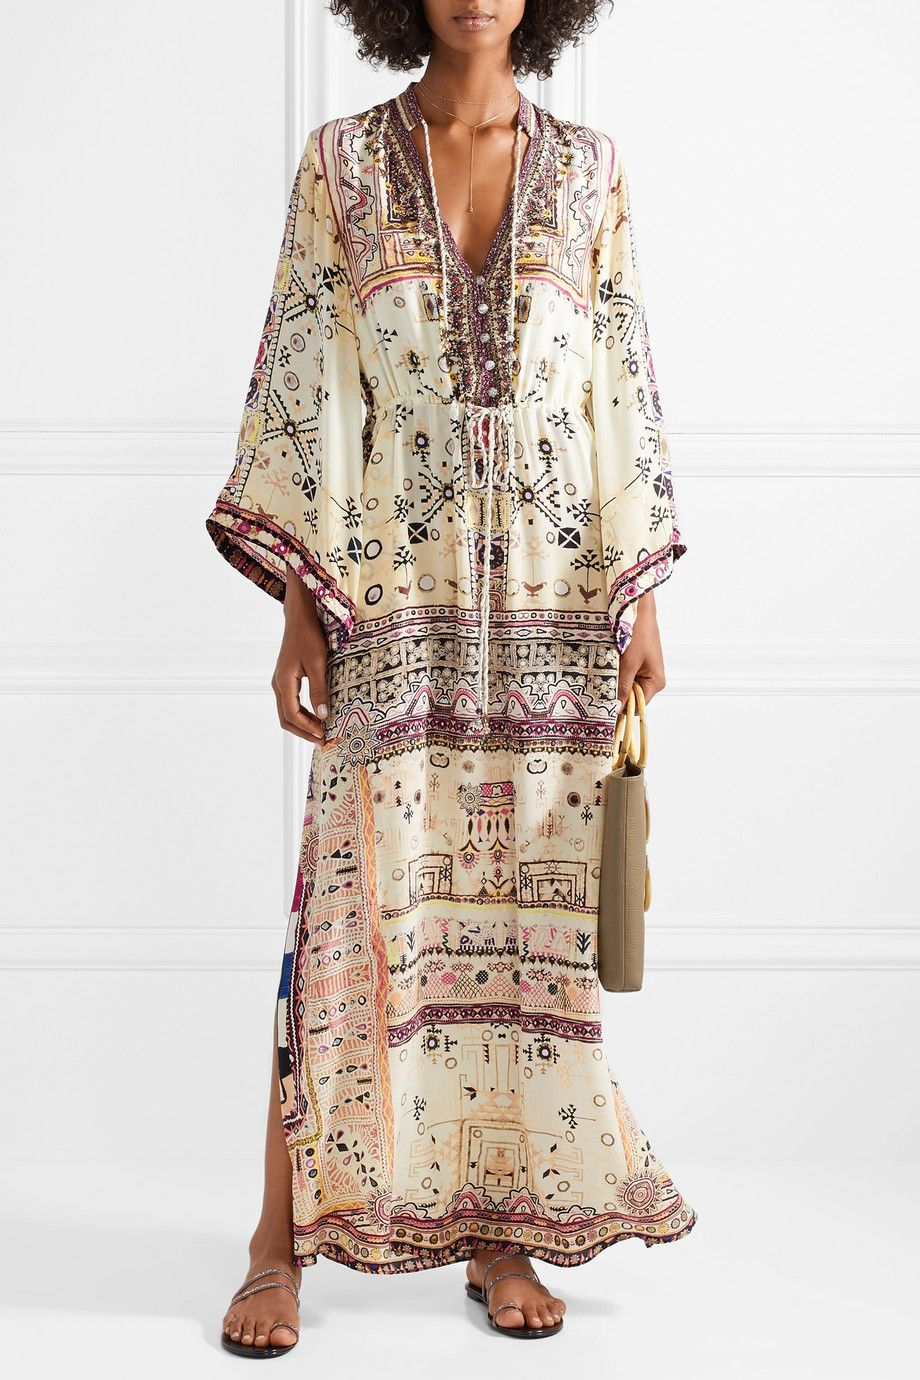 The Long Way Home Embellished Printed Silk Crepe De Chine Maxi Dress - Cream Camilla Enjoy For Sale Cheap Largest Supplier Sale Marketable Free Shipping Hot Sale Choice Cheap Online gmzxPm